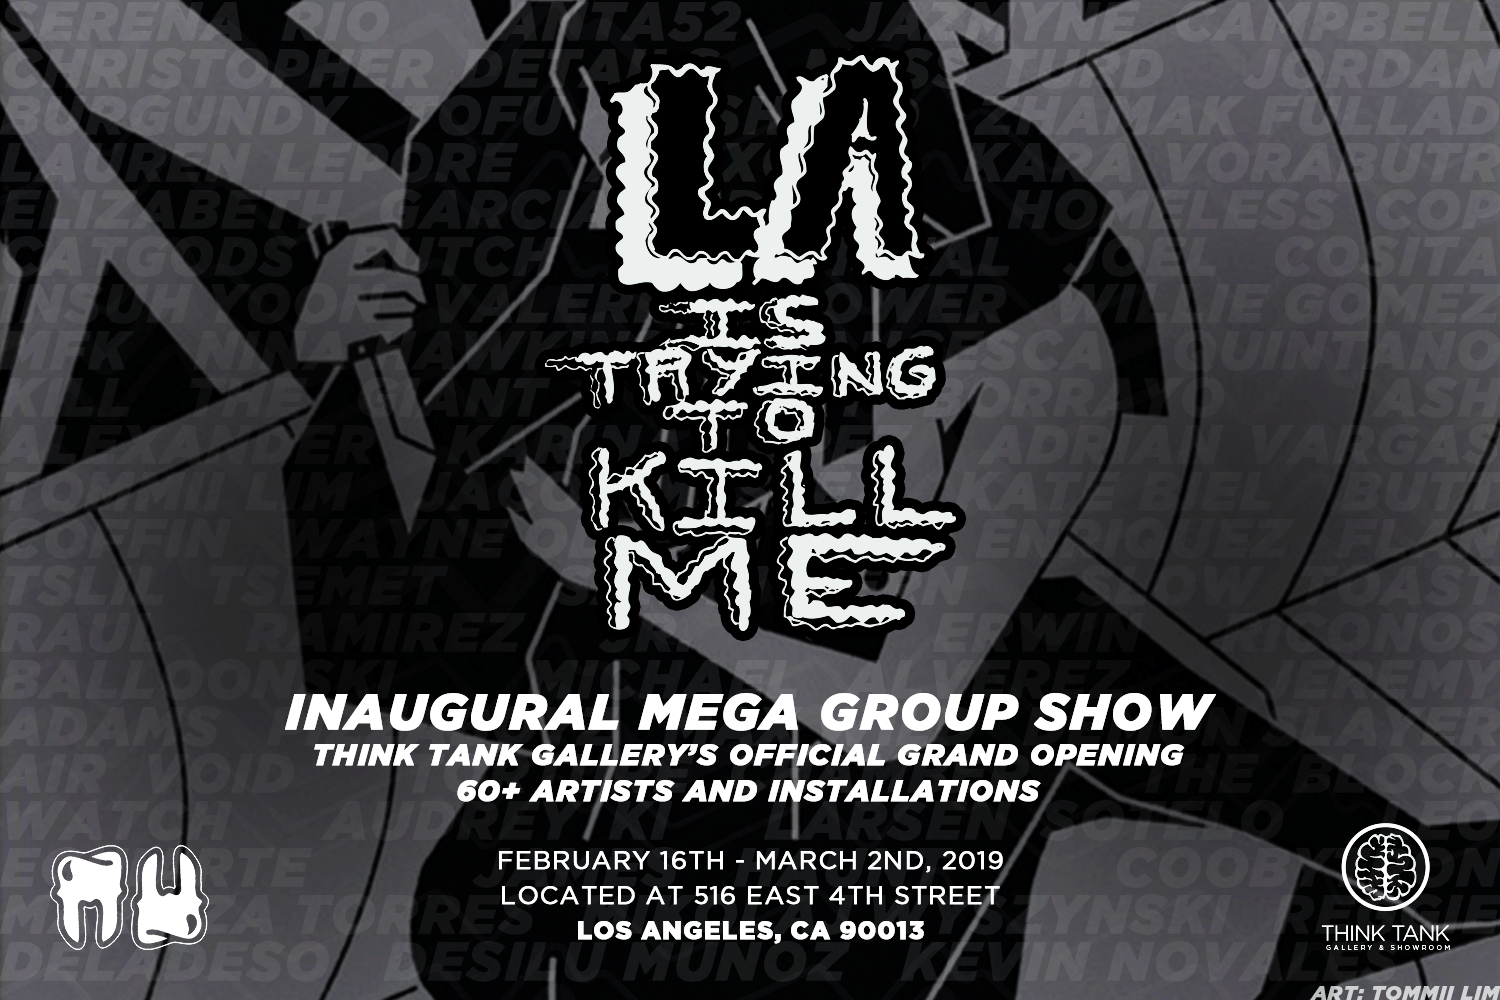 LA is Trying to Kill Me – Think Tank Gallery Inaugural Mega Group Show and Grand Opening